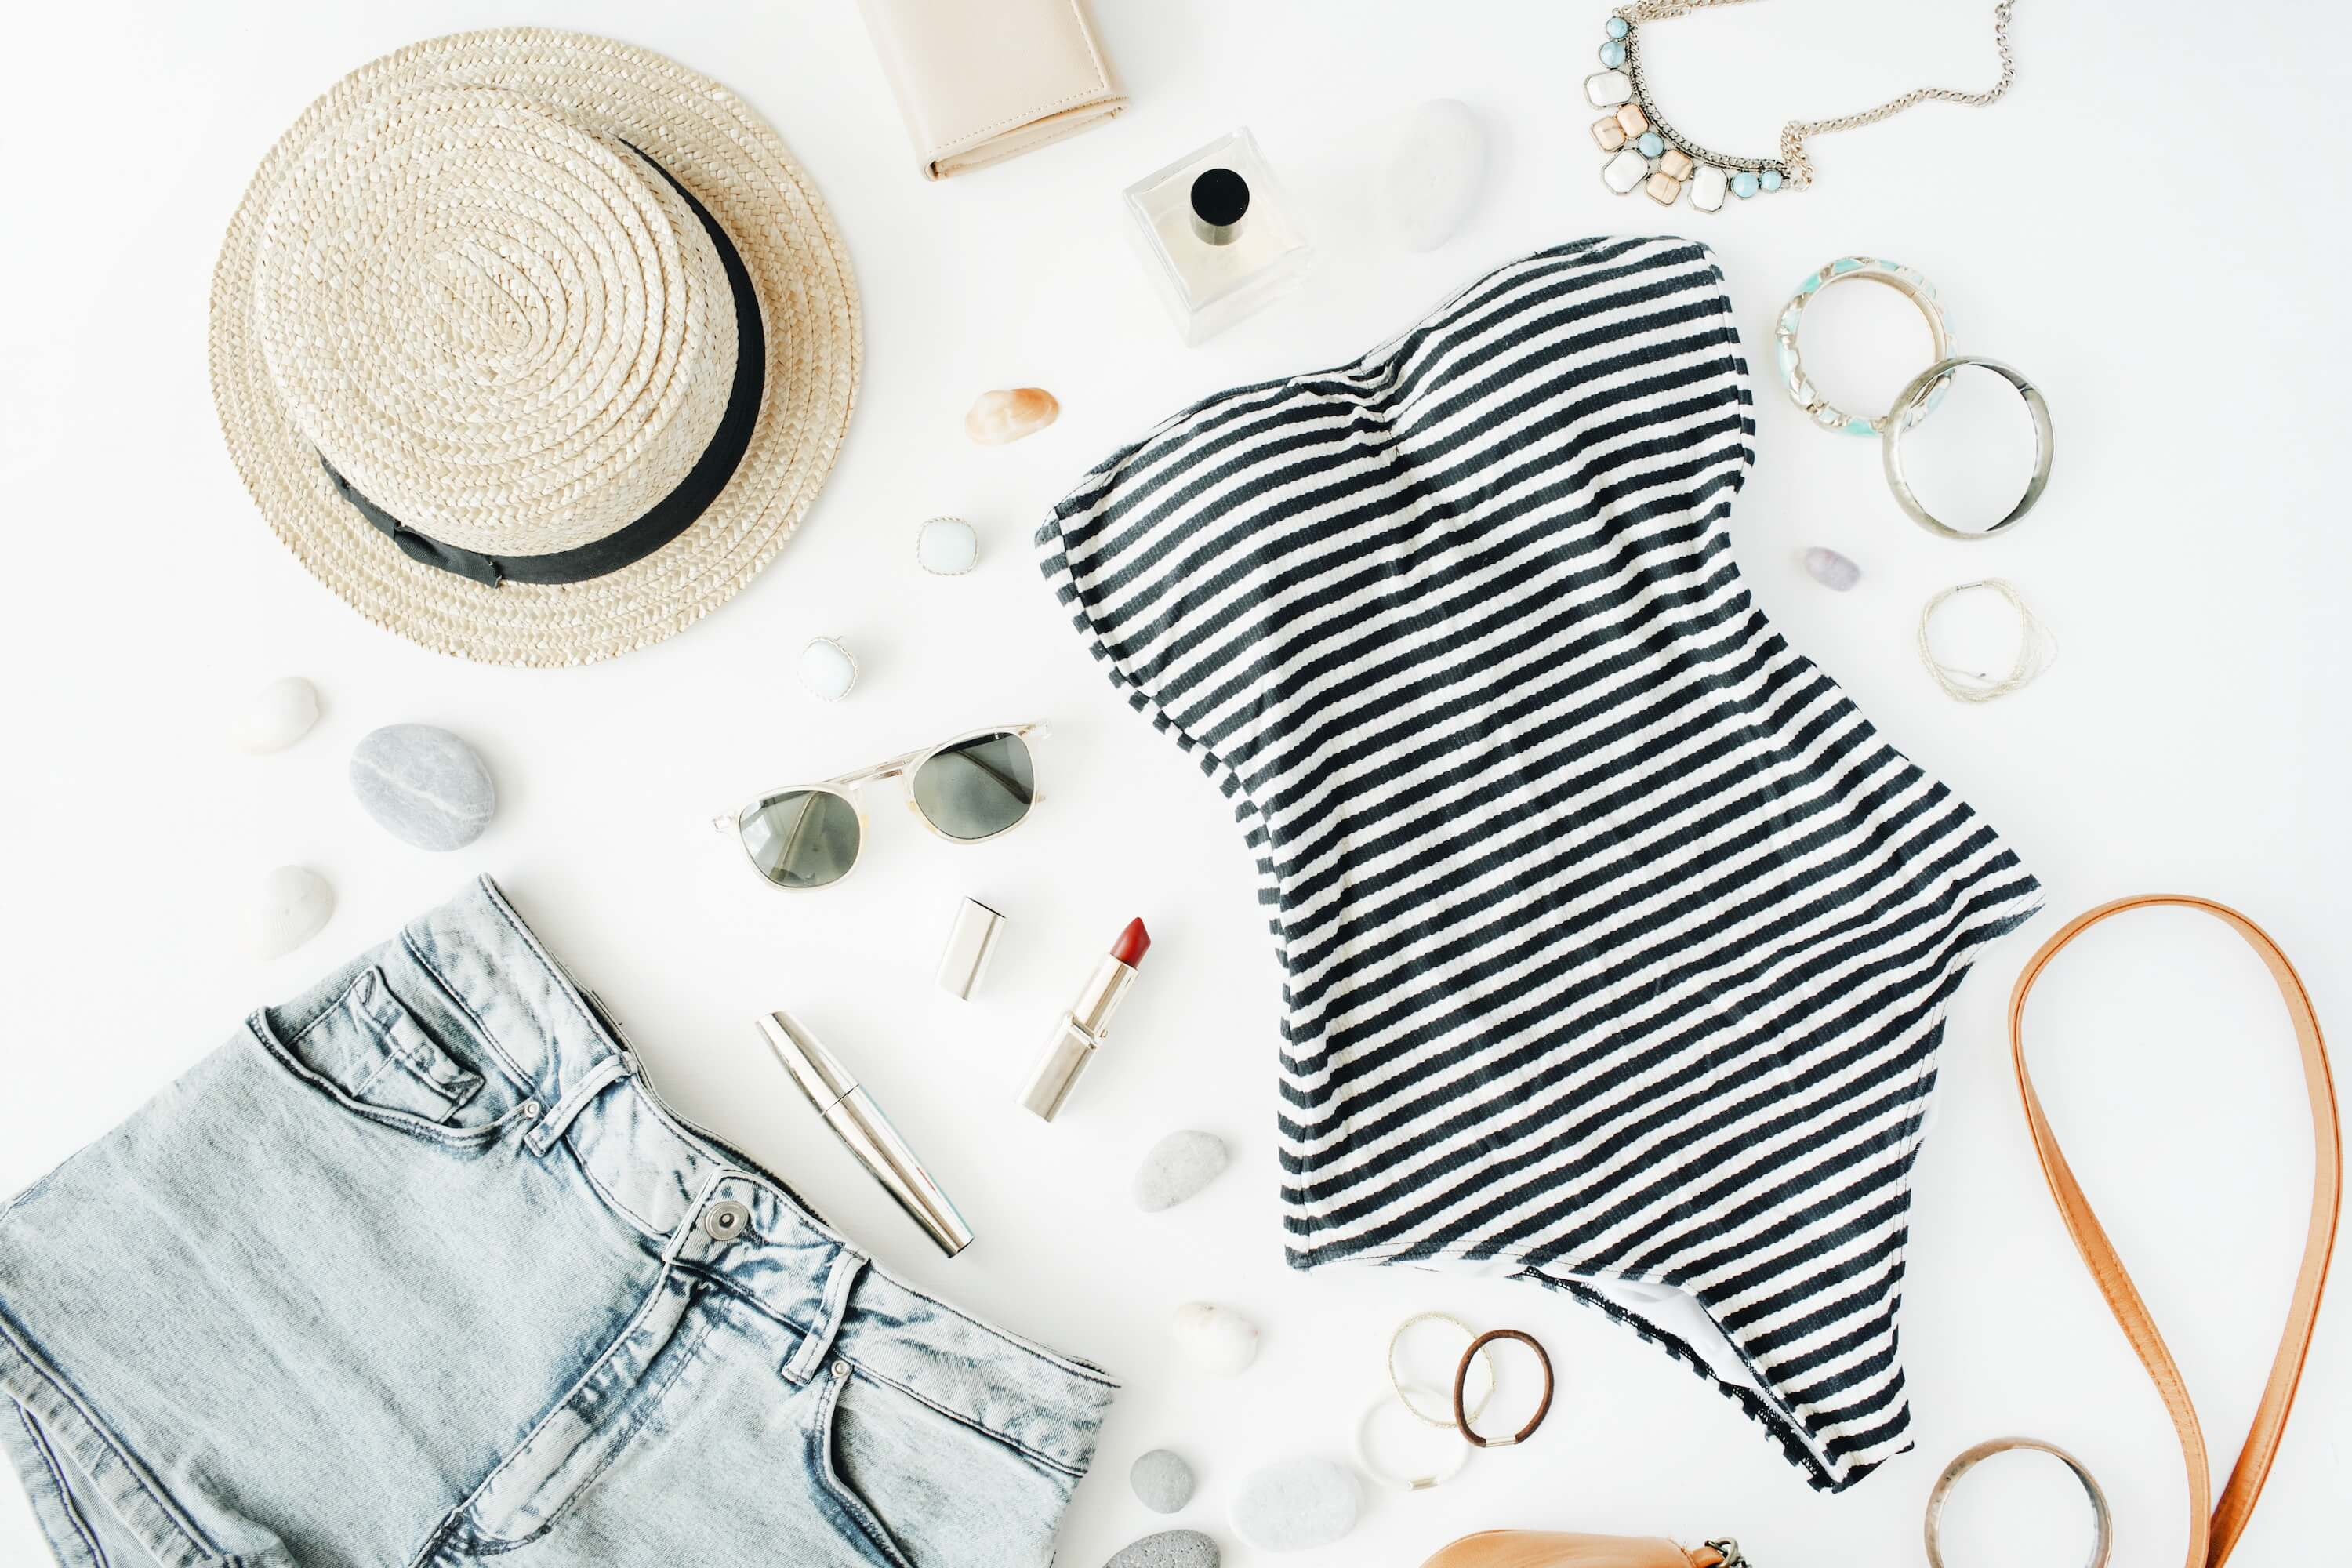 The Ultimate Packing List for Summer Vacation in Spain - Clothes and Accessories